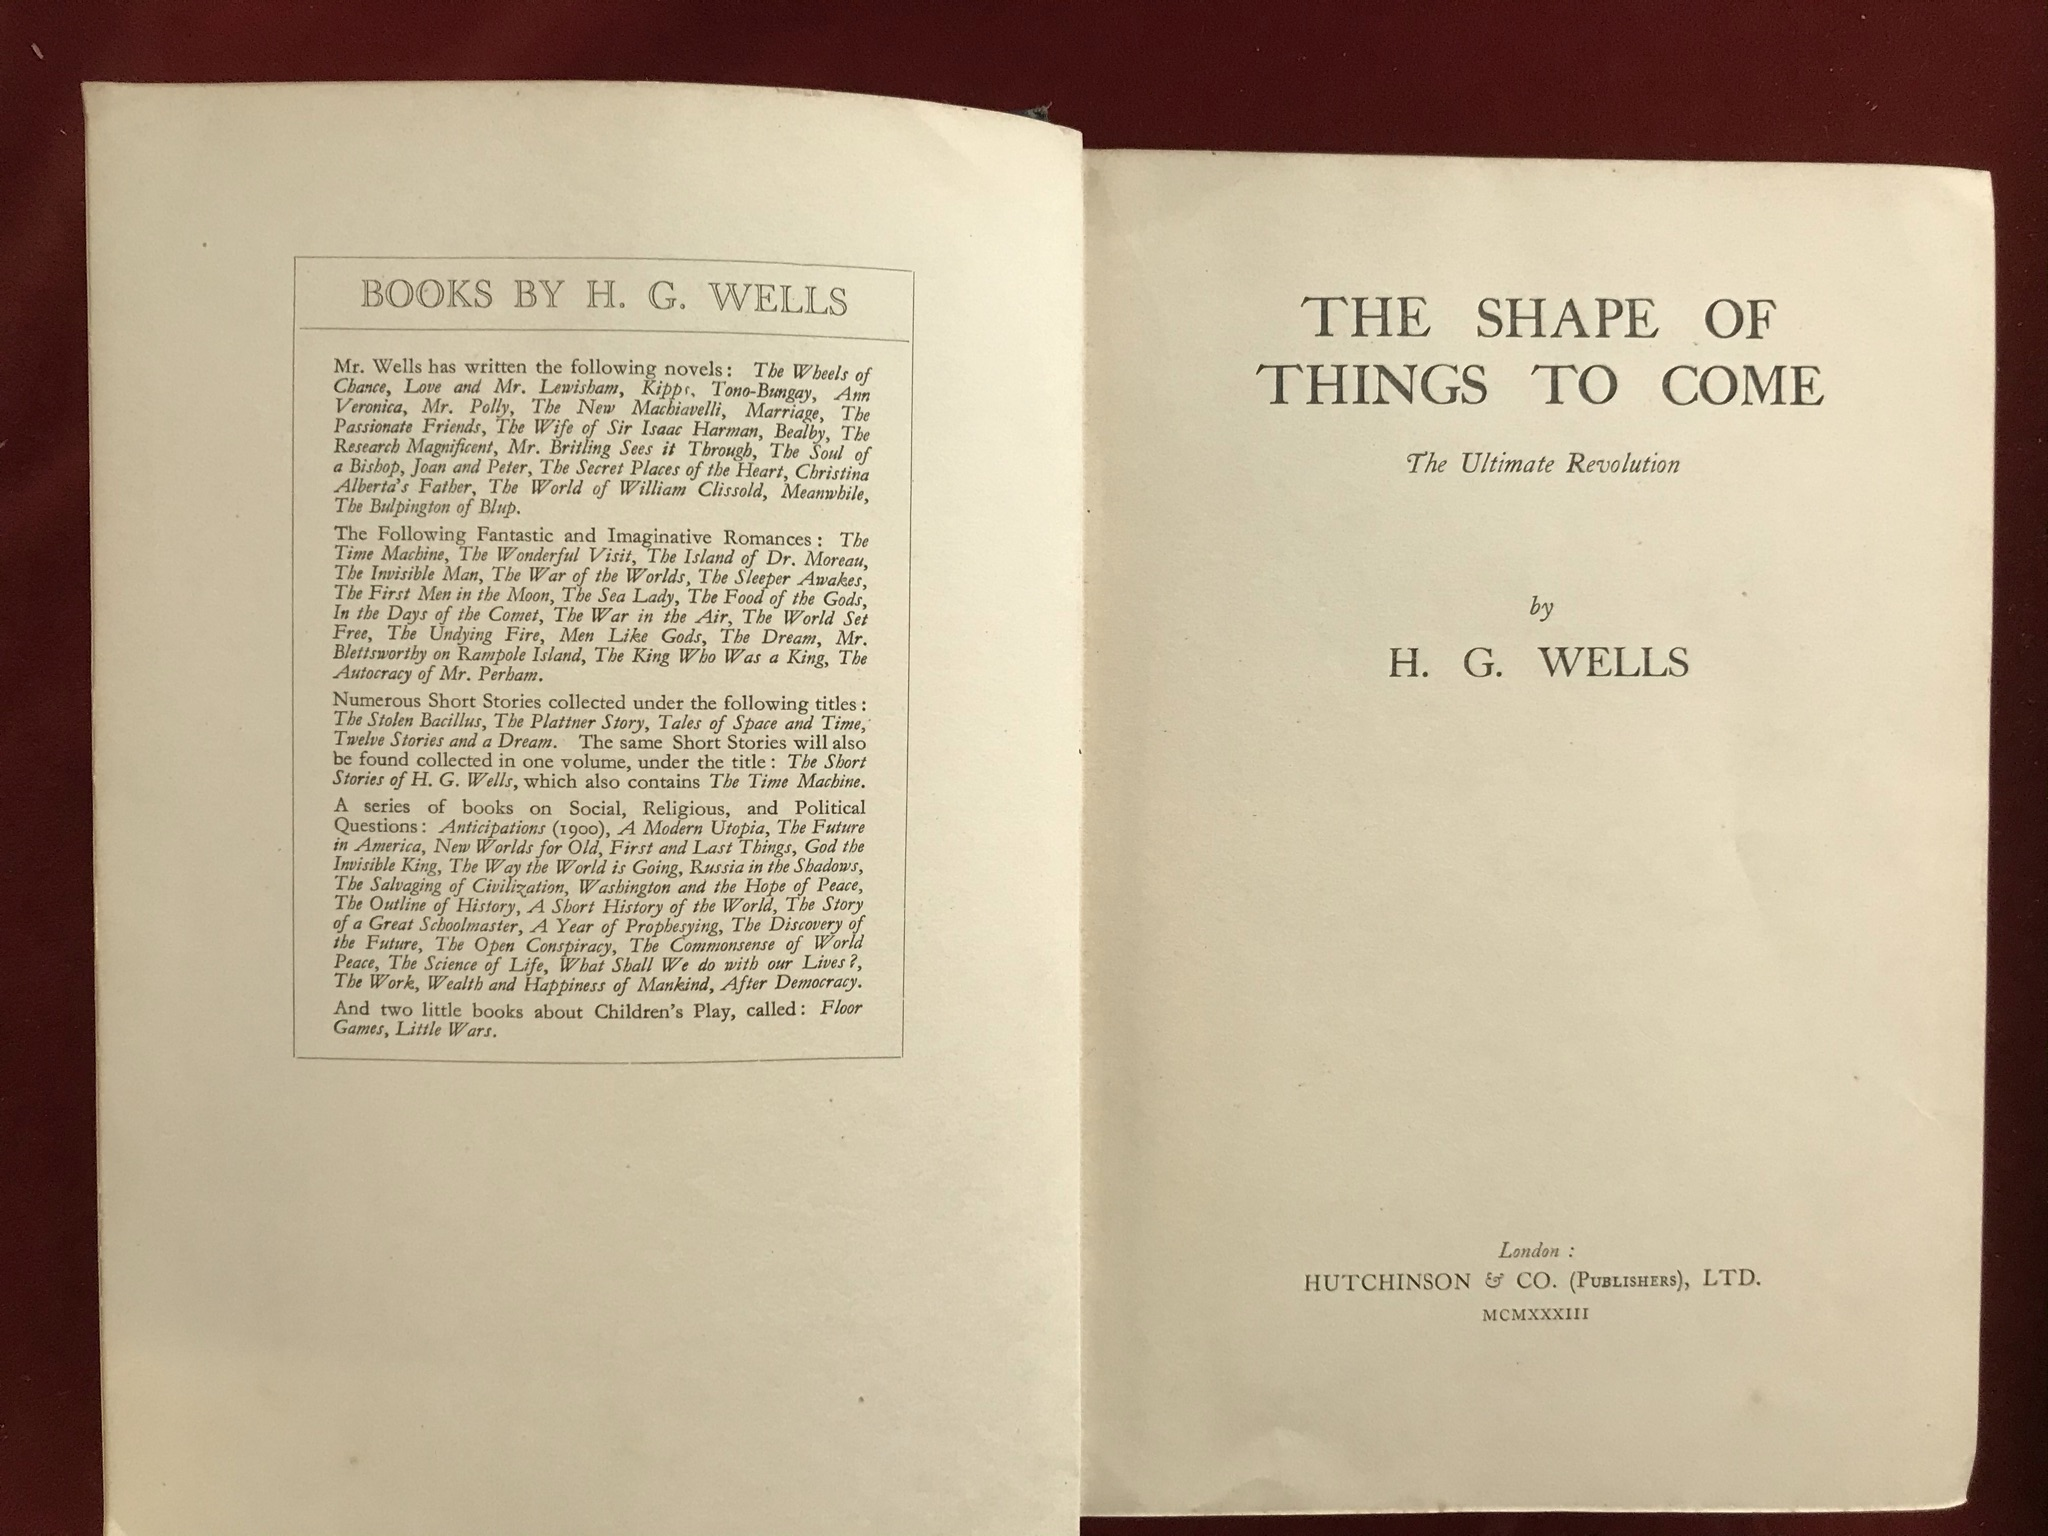 The Shape of Things to Come First edition no D/W, 1933 - Image 2 of 3